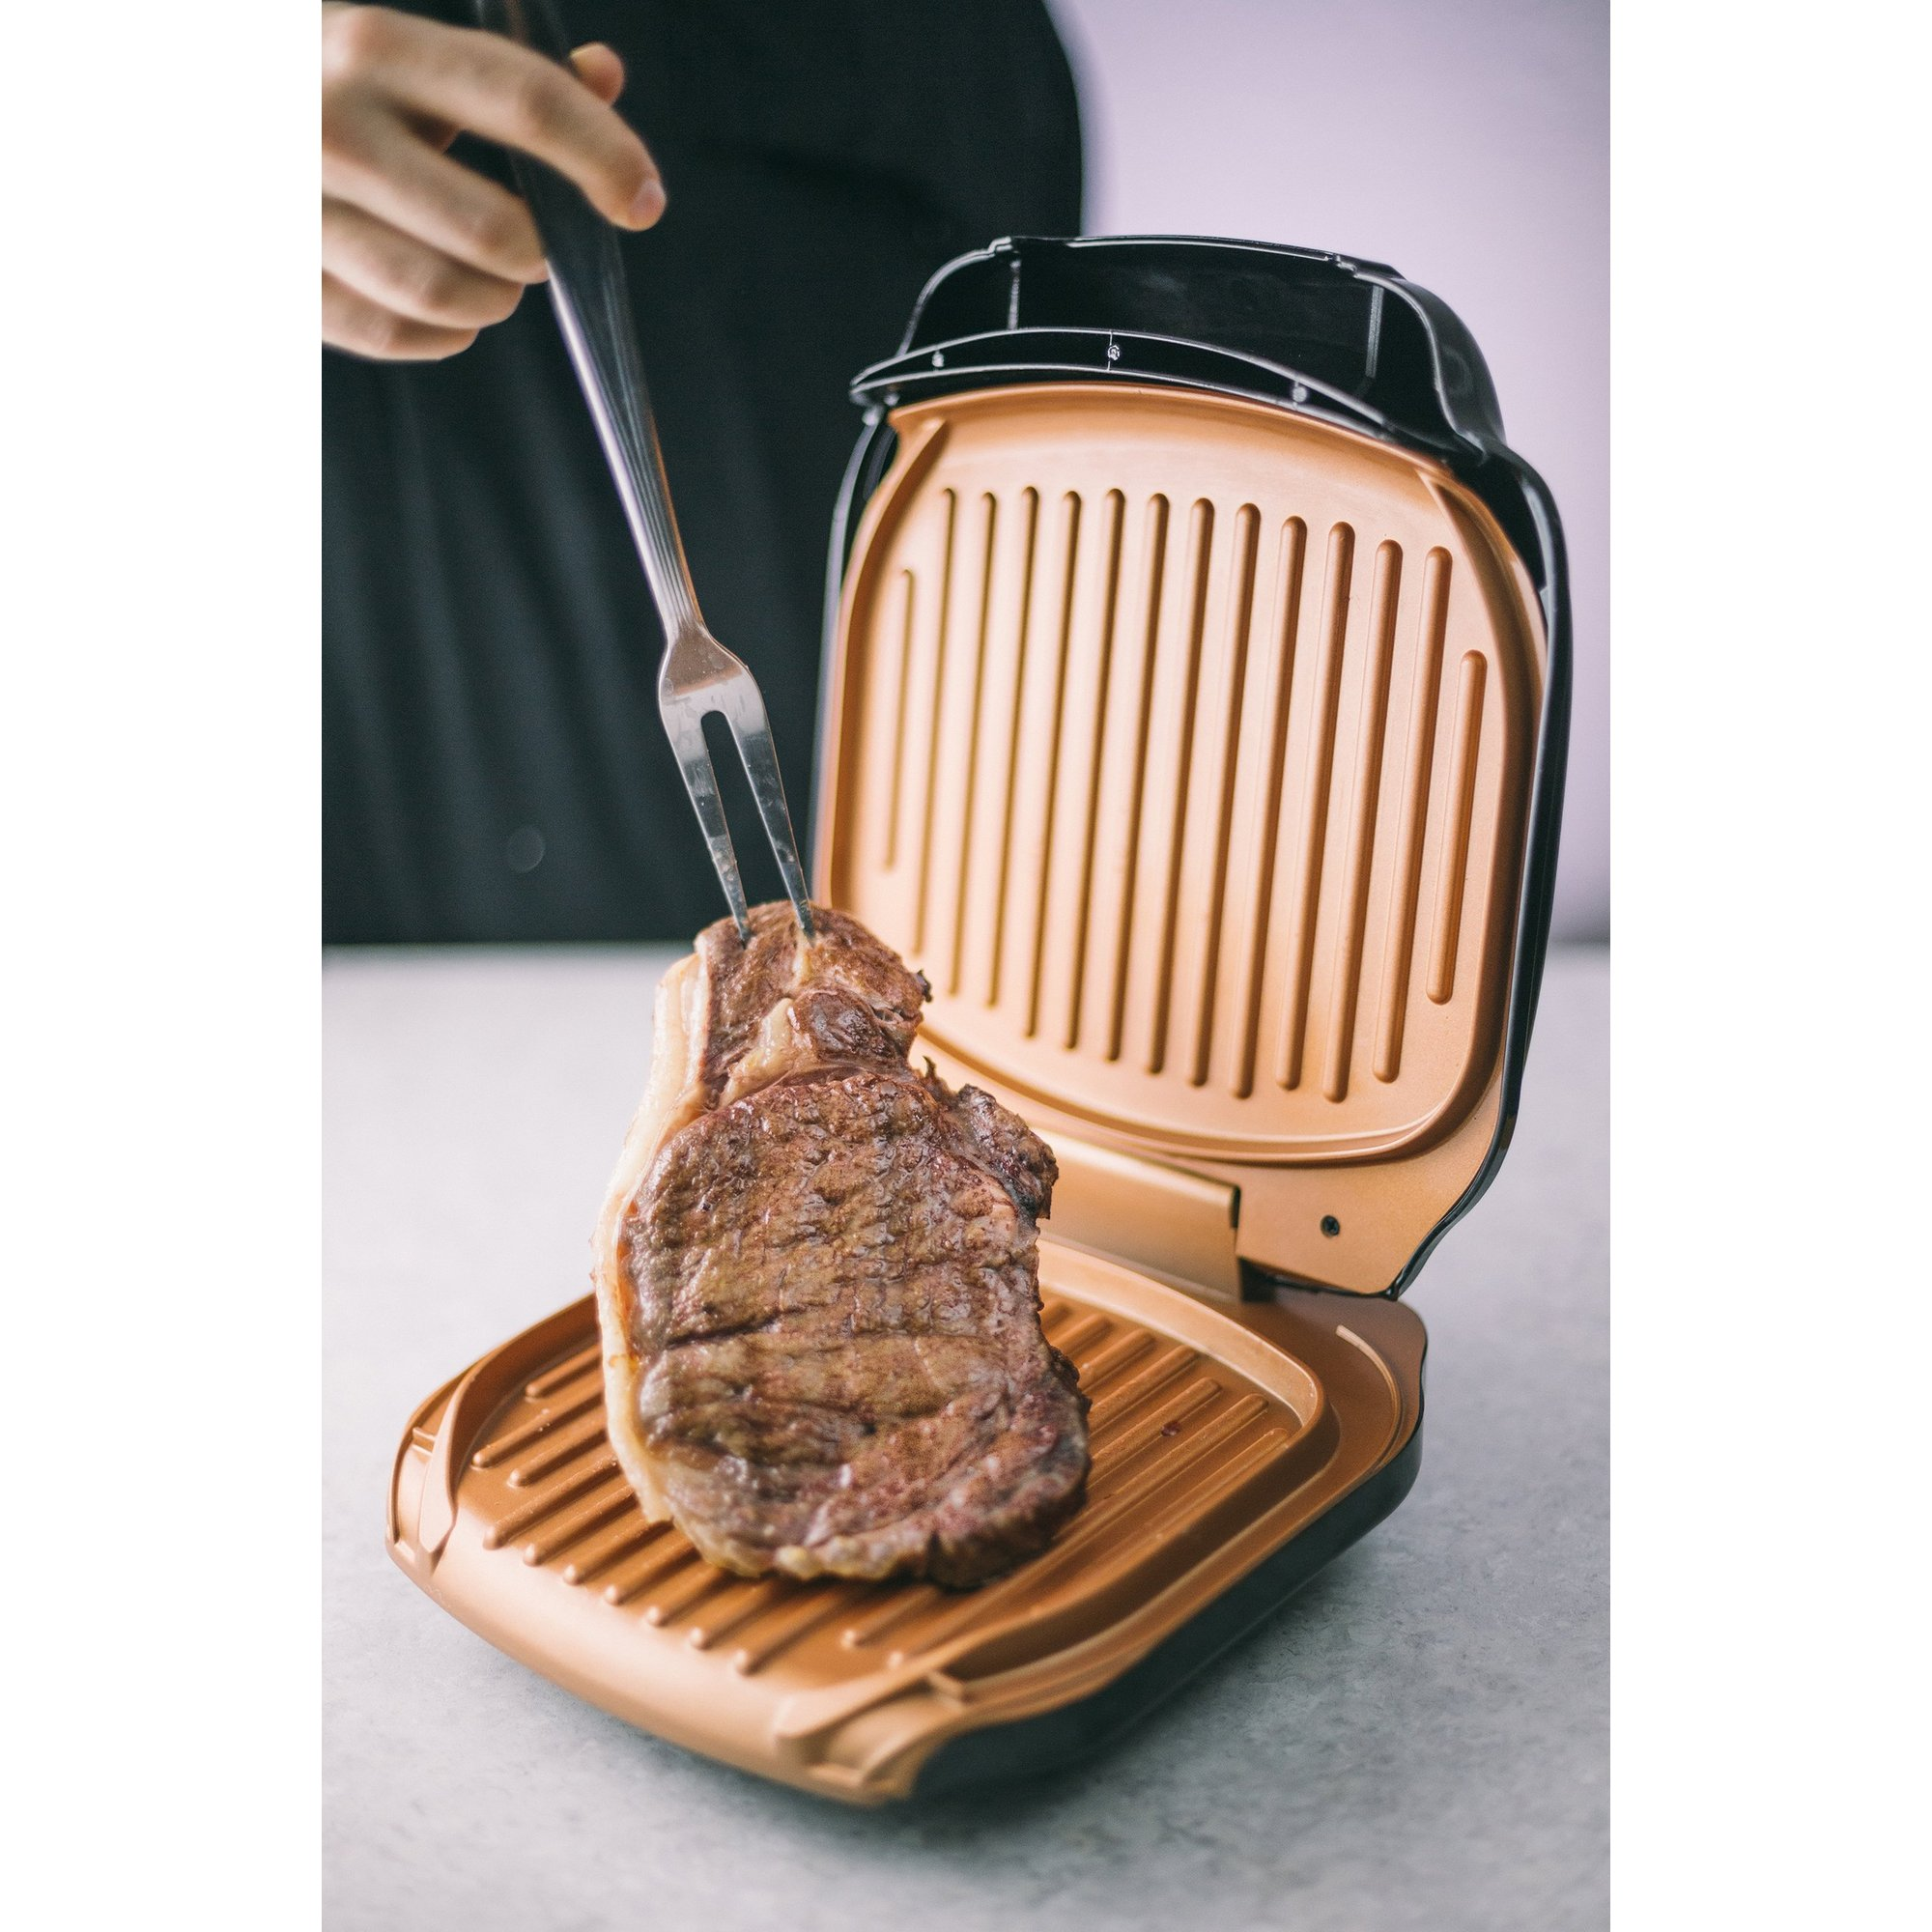 Image of Gotham Steel Low Fat Health Grill